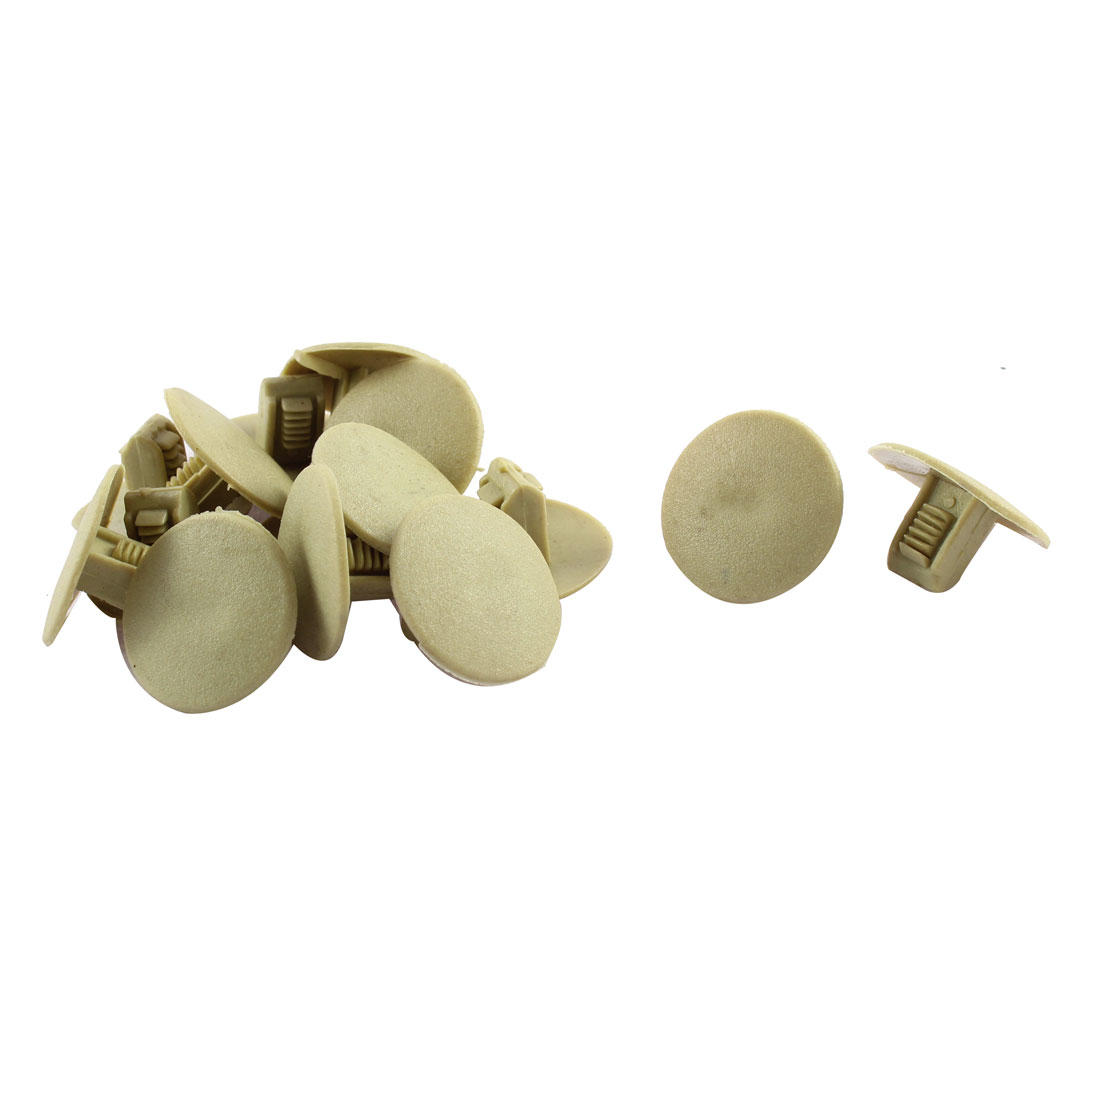 15x Car Plastic Push in Fastener Rivets Clips Beige